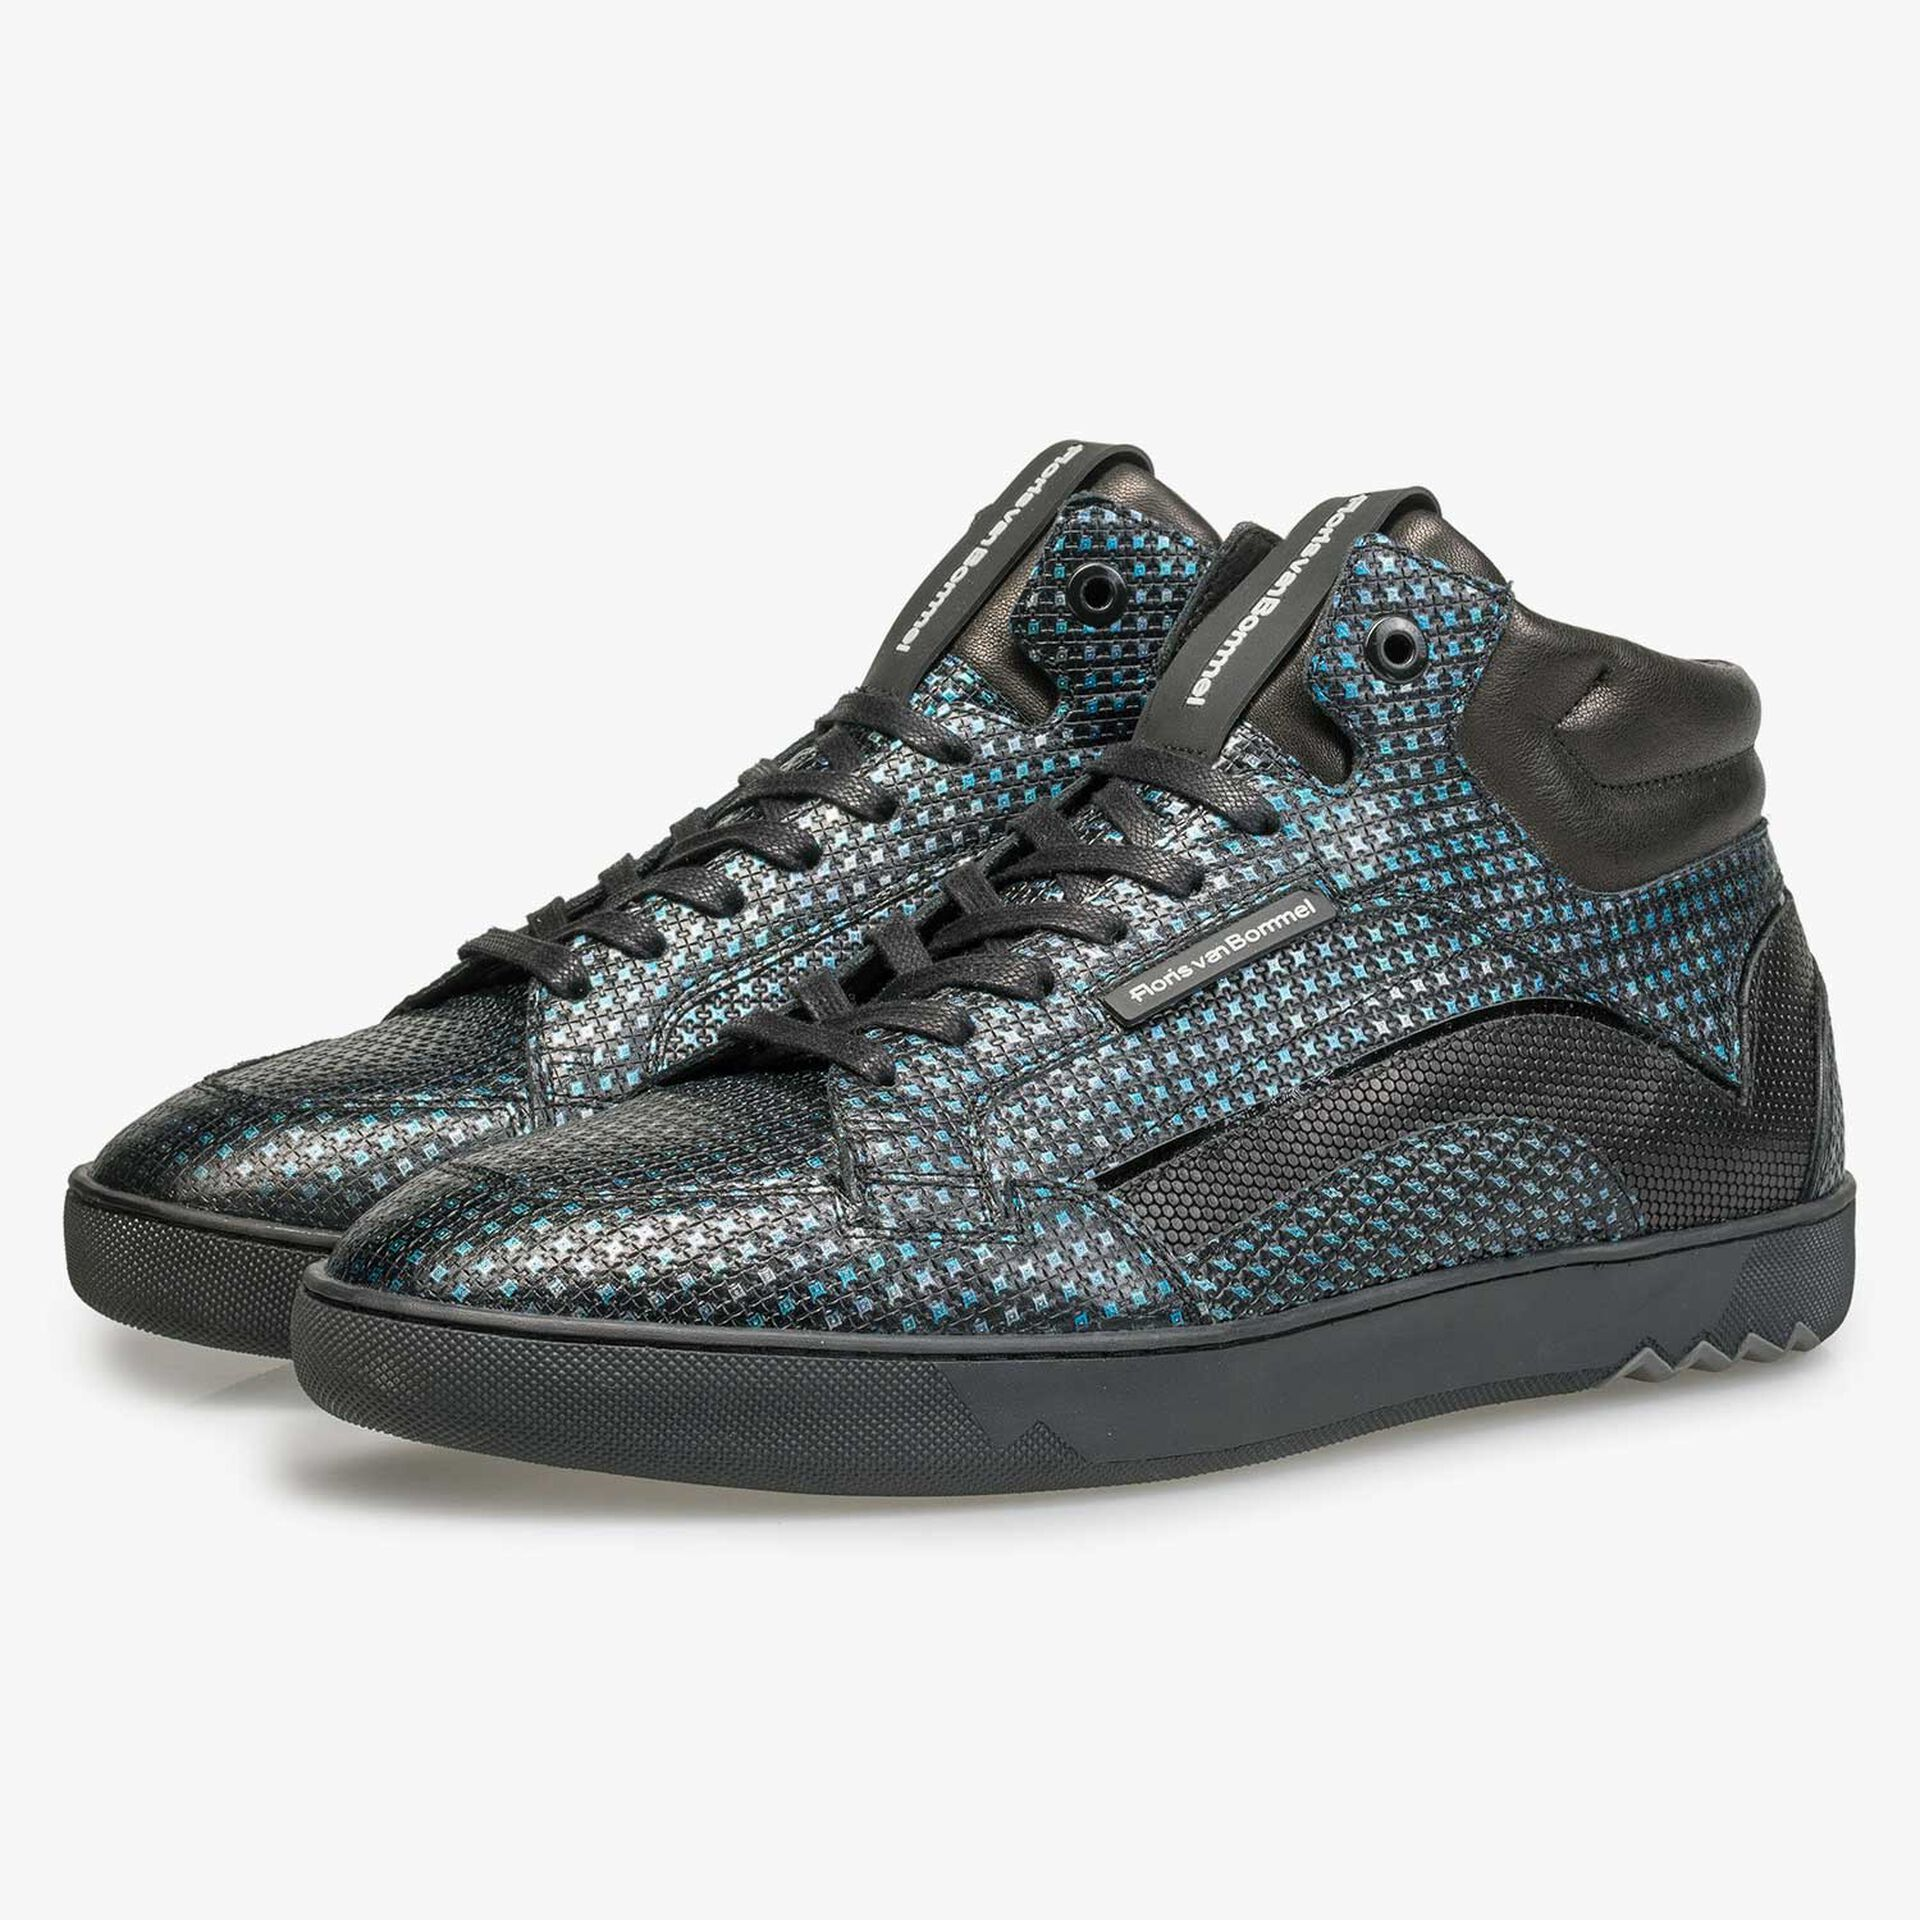 Blue sneaker with metallic print